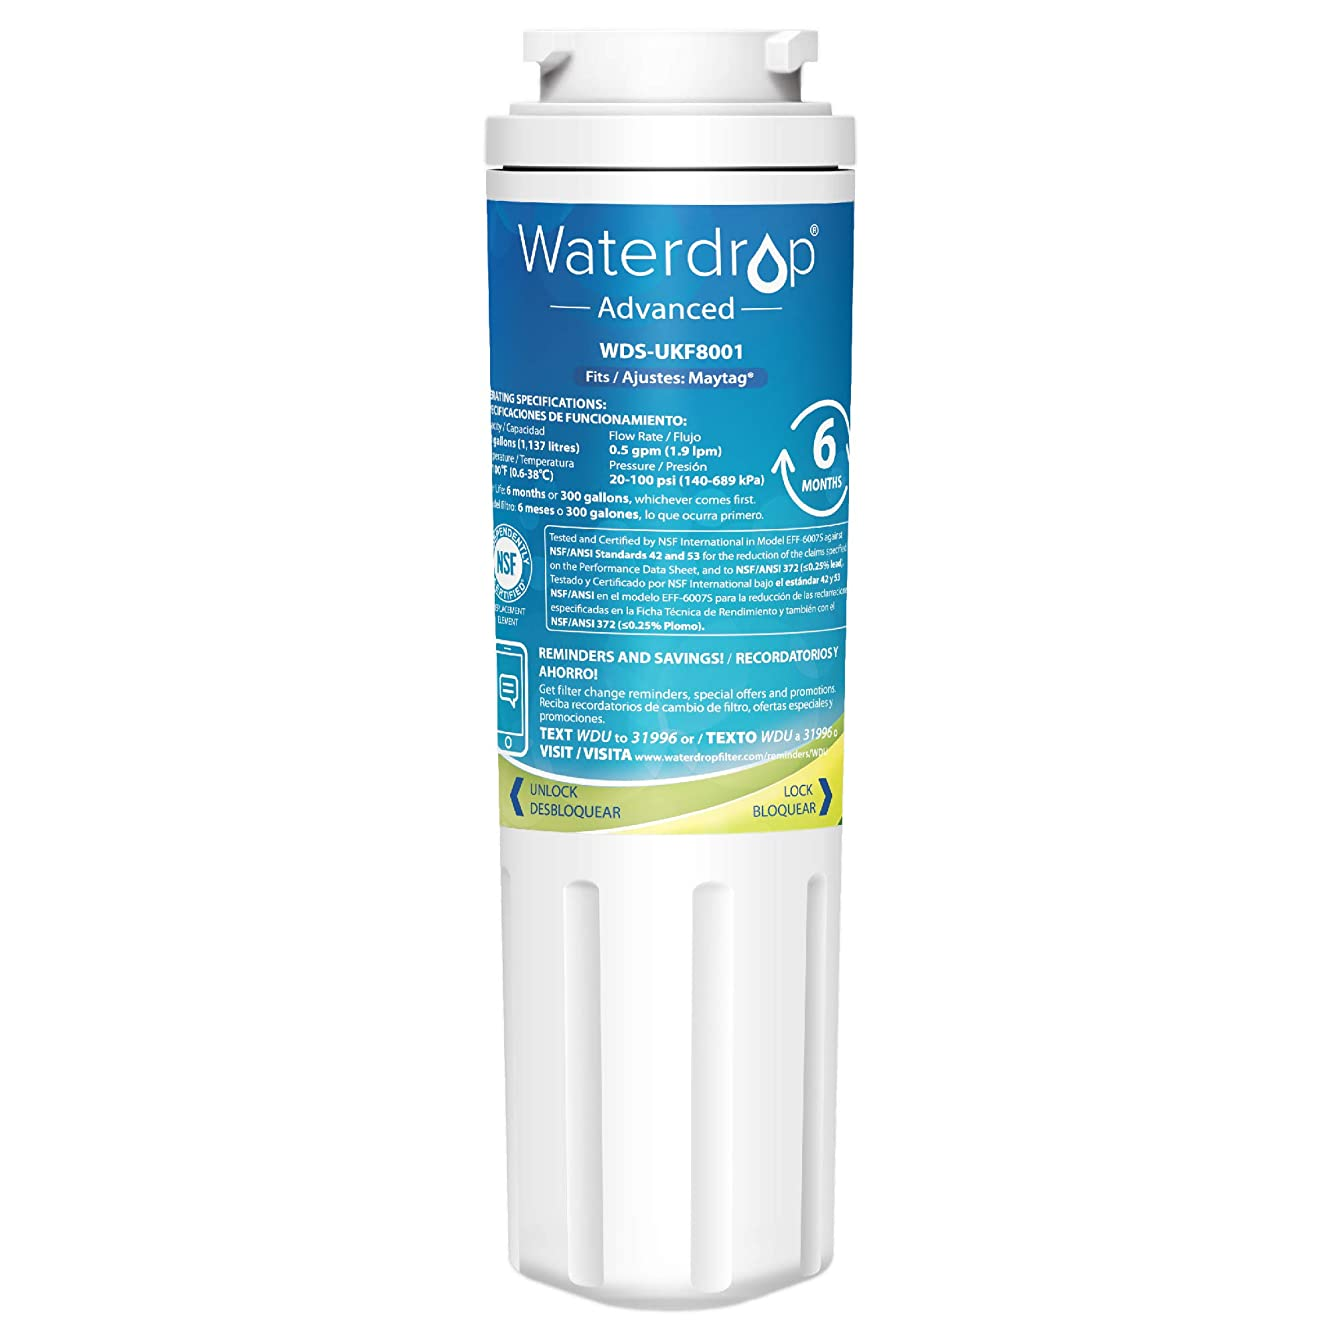 Waterdrop UKF8001 NSF 53&42 Certified Refrigerator Water Filter, Compatible with Maytag UKF8001AXX-750, UKF8001AXX-200, Whirlpool 4396395, 469006, Filter 4, PUR, Puriclean II, EDR4RXD1